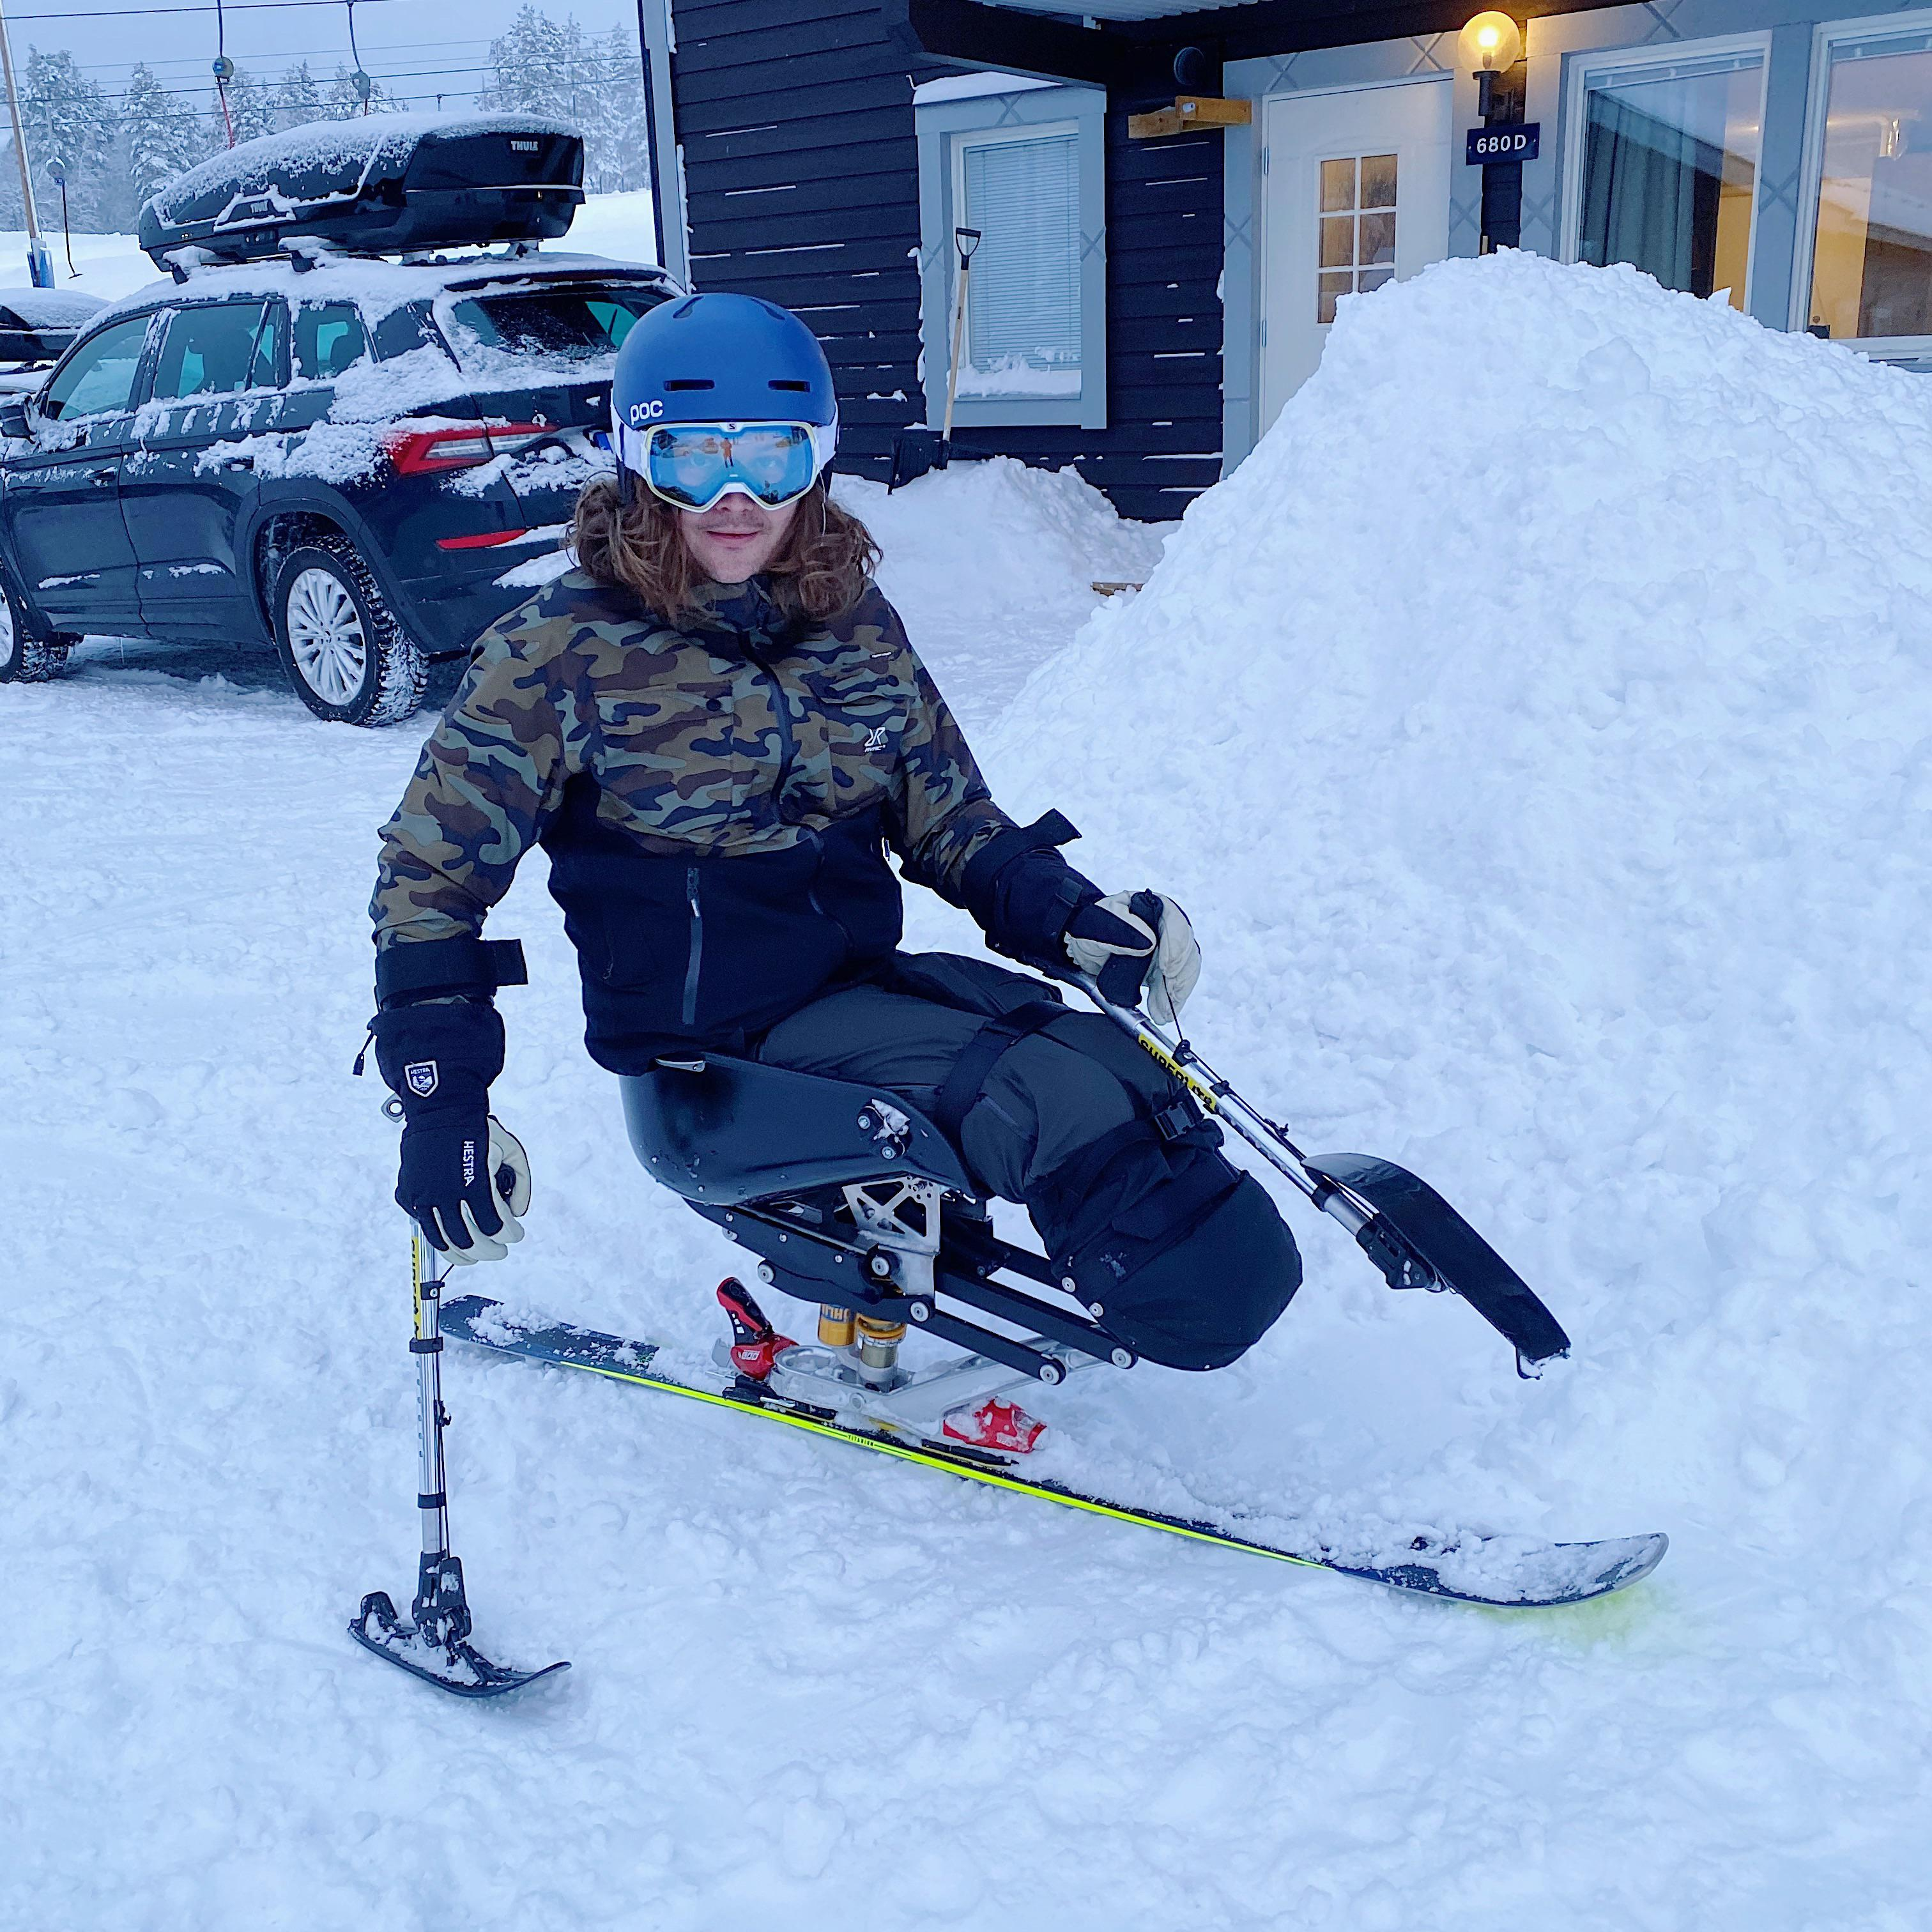 [image]   A few years back I was devastated the I couldn't ski anymore. Now I'm able to ski better than I ever had thanks to some cool tech, a new mindset and determination. Never ever give up.